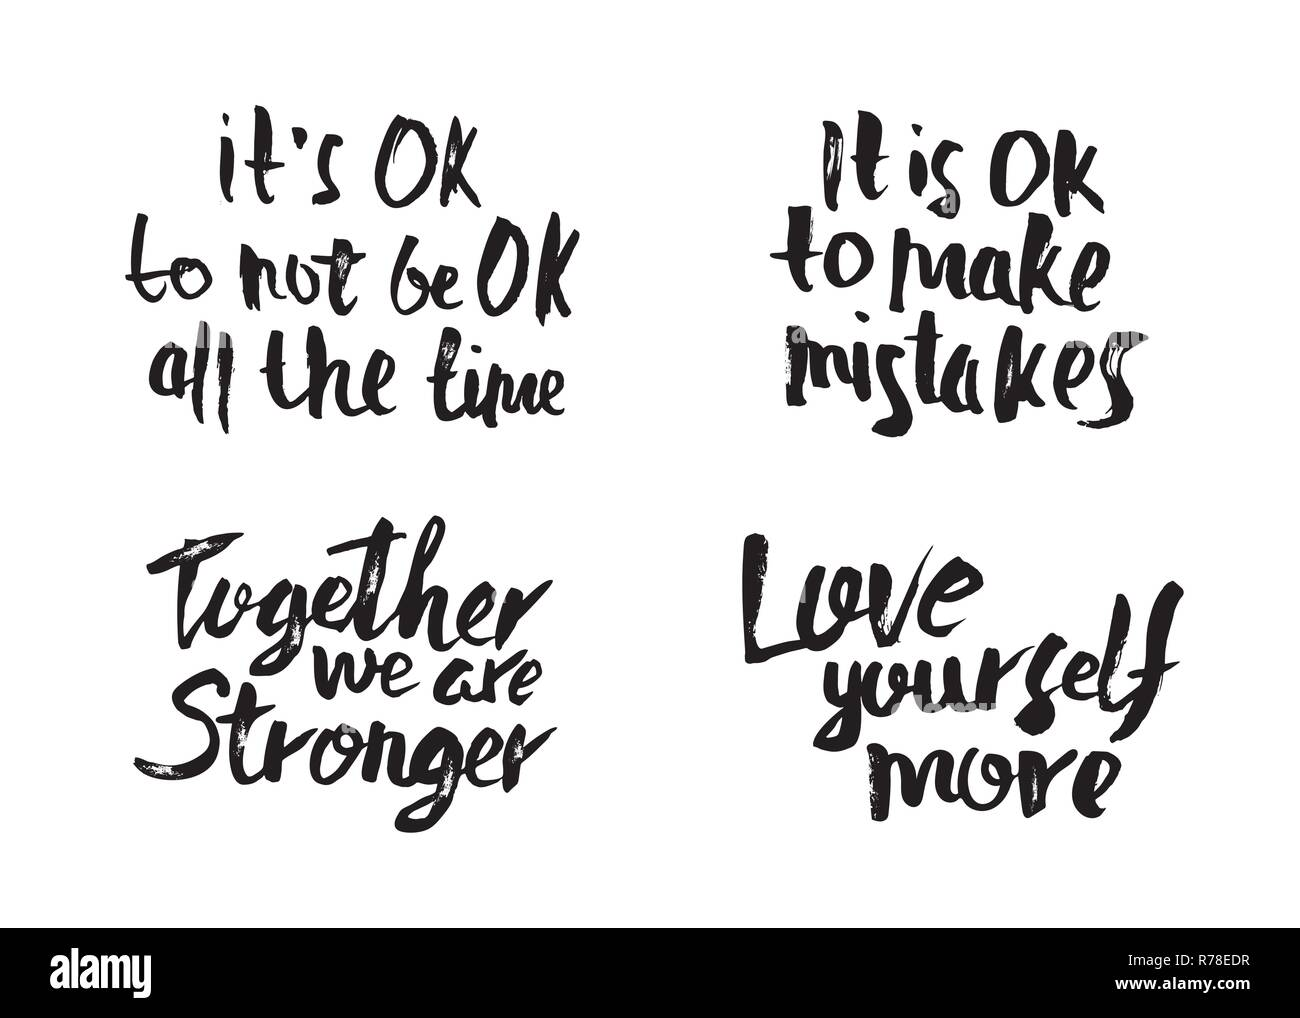 Love Quotes Black And White Stock Photos Images Alamy